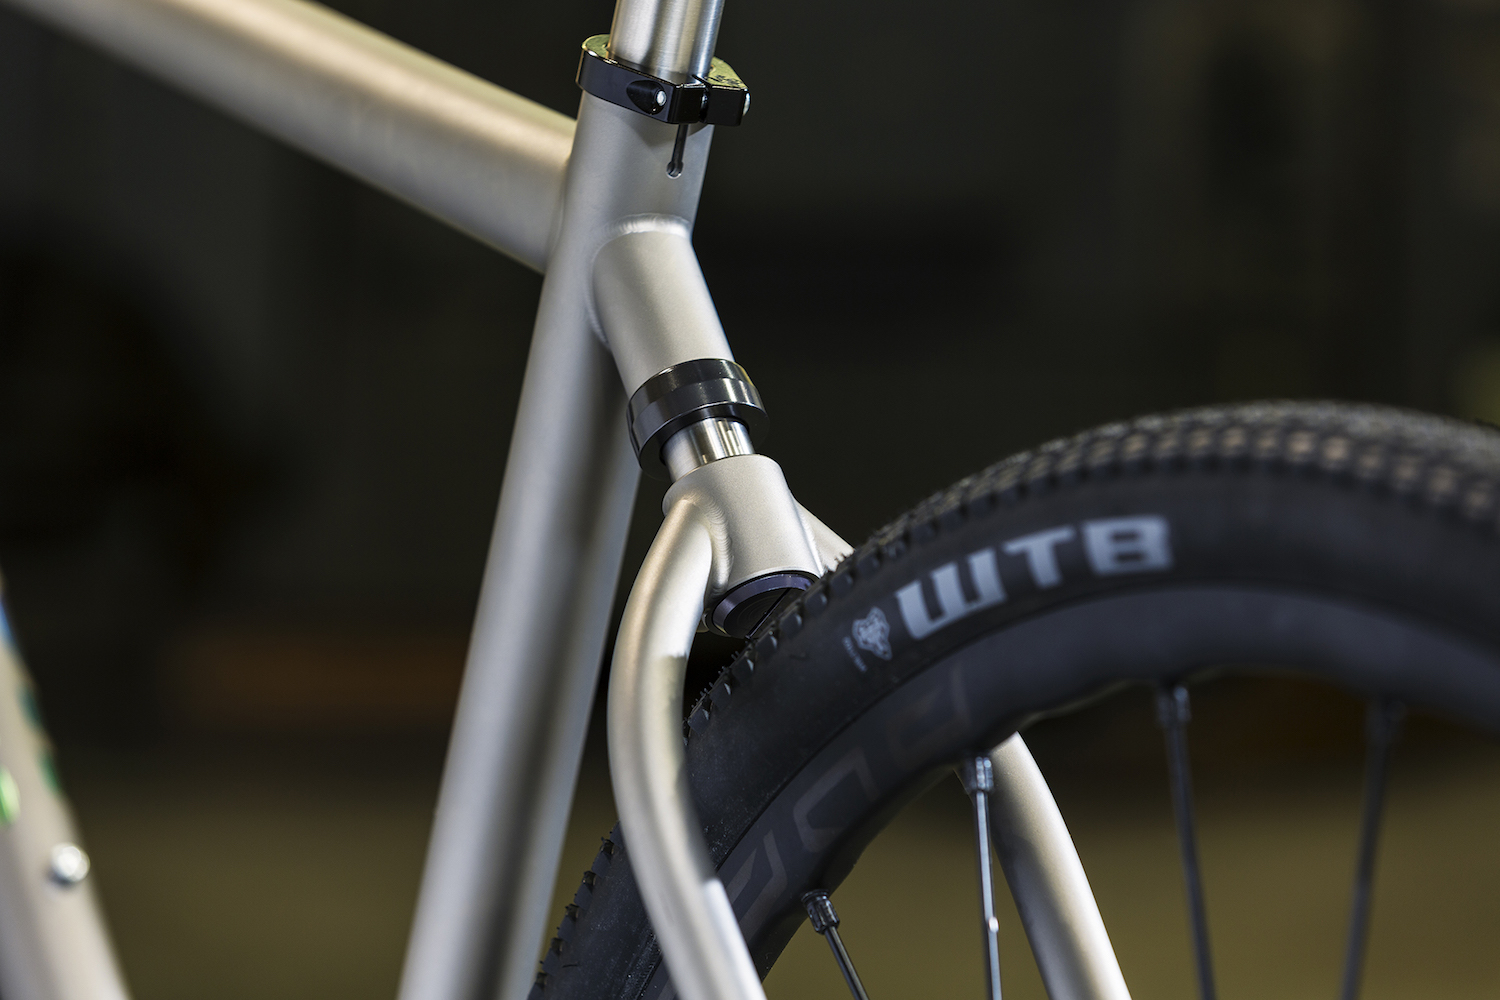 The 'softtail' features just over 20mm of rear axle travel that takes the edge off backcountry road and trail chatter